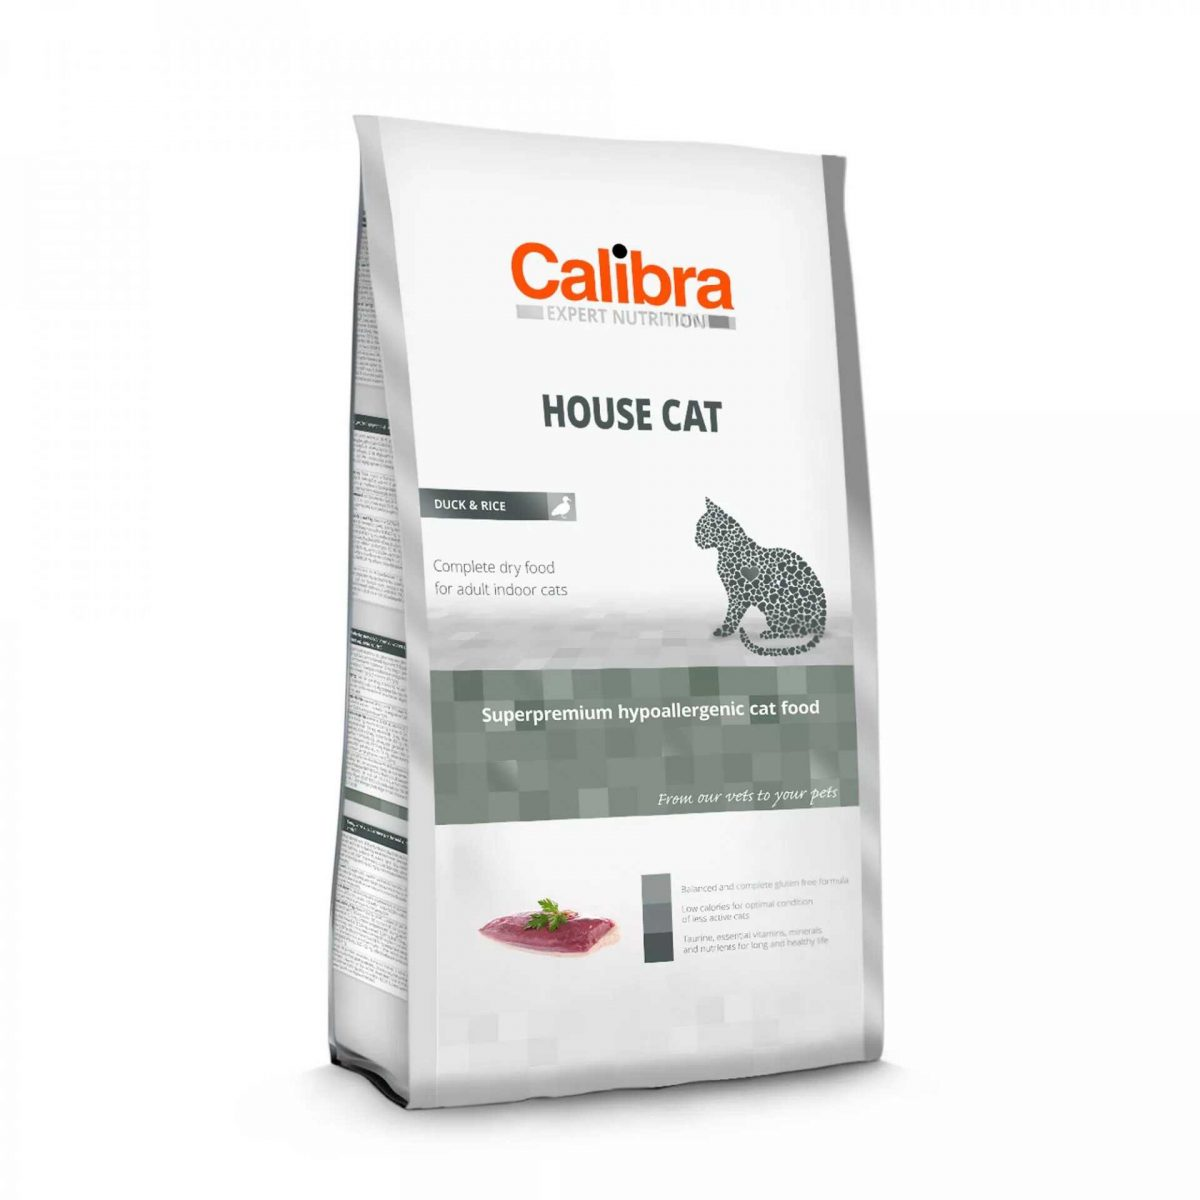 383 calibra cat expert nutrition house cat old